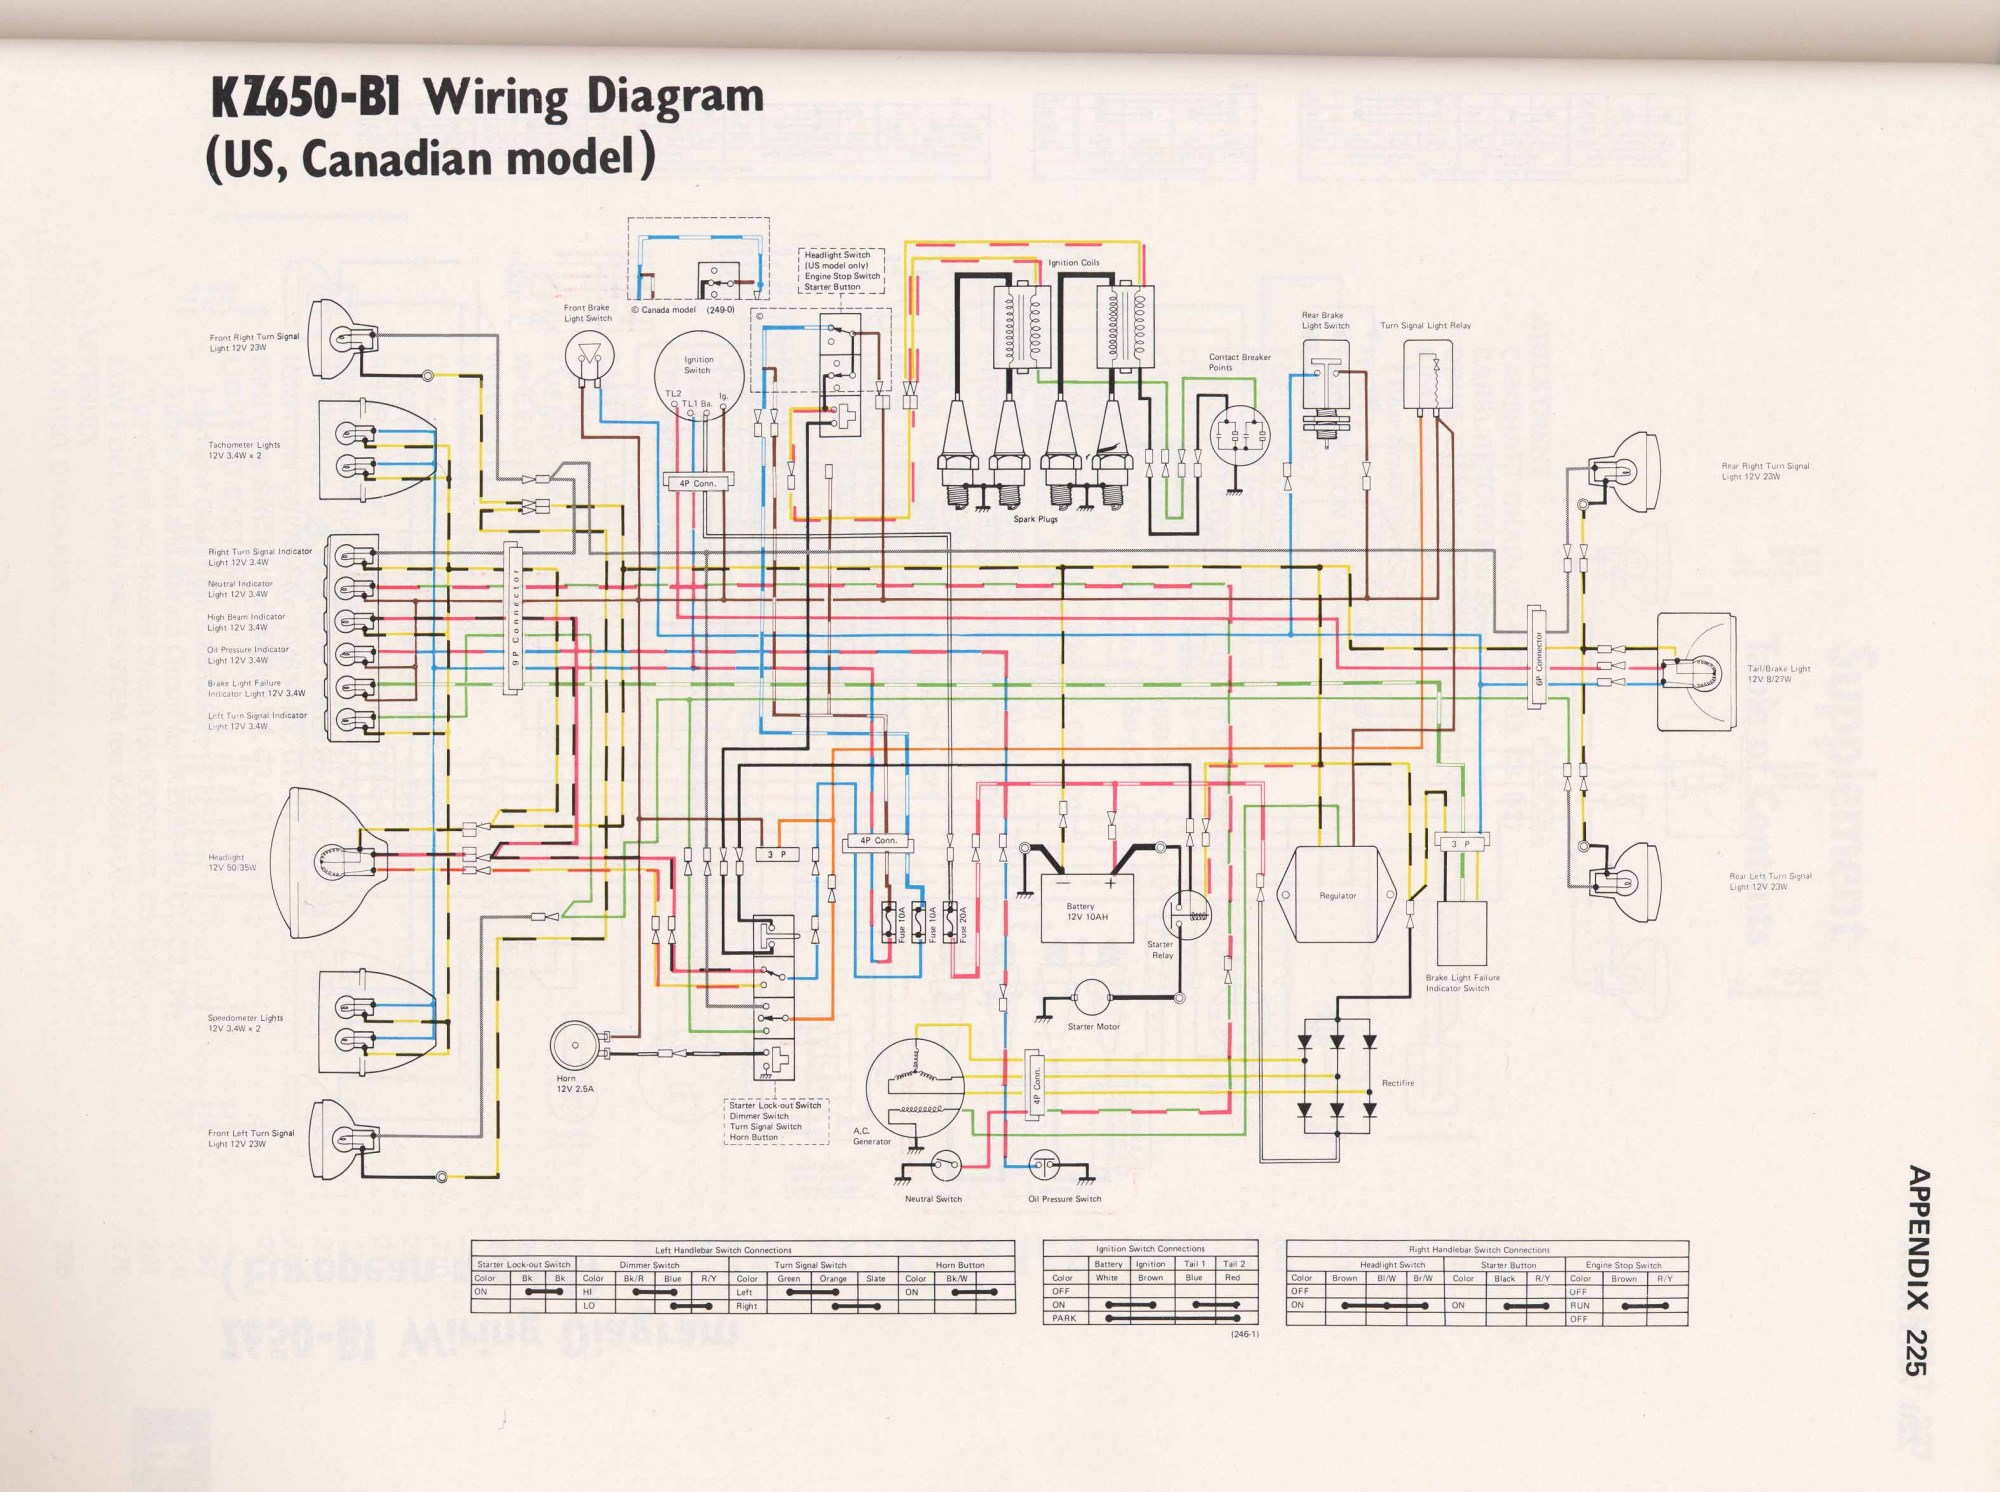 hight resolution of 1976 kawasaki wiring diagrams schematic diagrams basic house wiring diagrams kz650 info wiring diagrams 2008 kawasaki